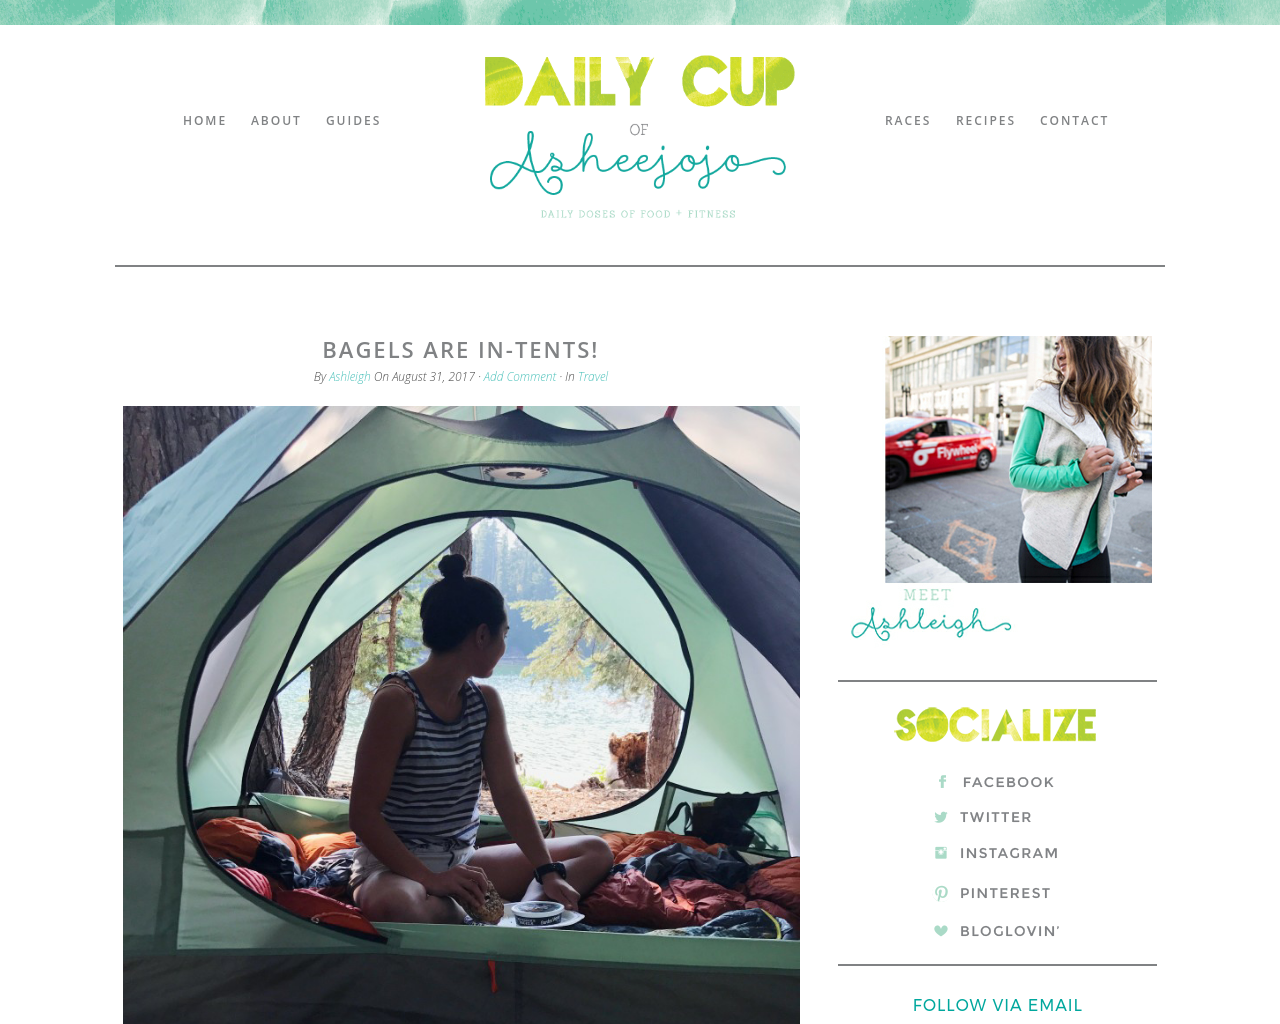 Daily-Cup-of-Asheejojo-Advertising-Reviews-Pricing